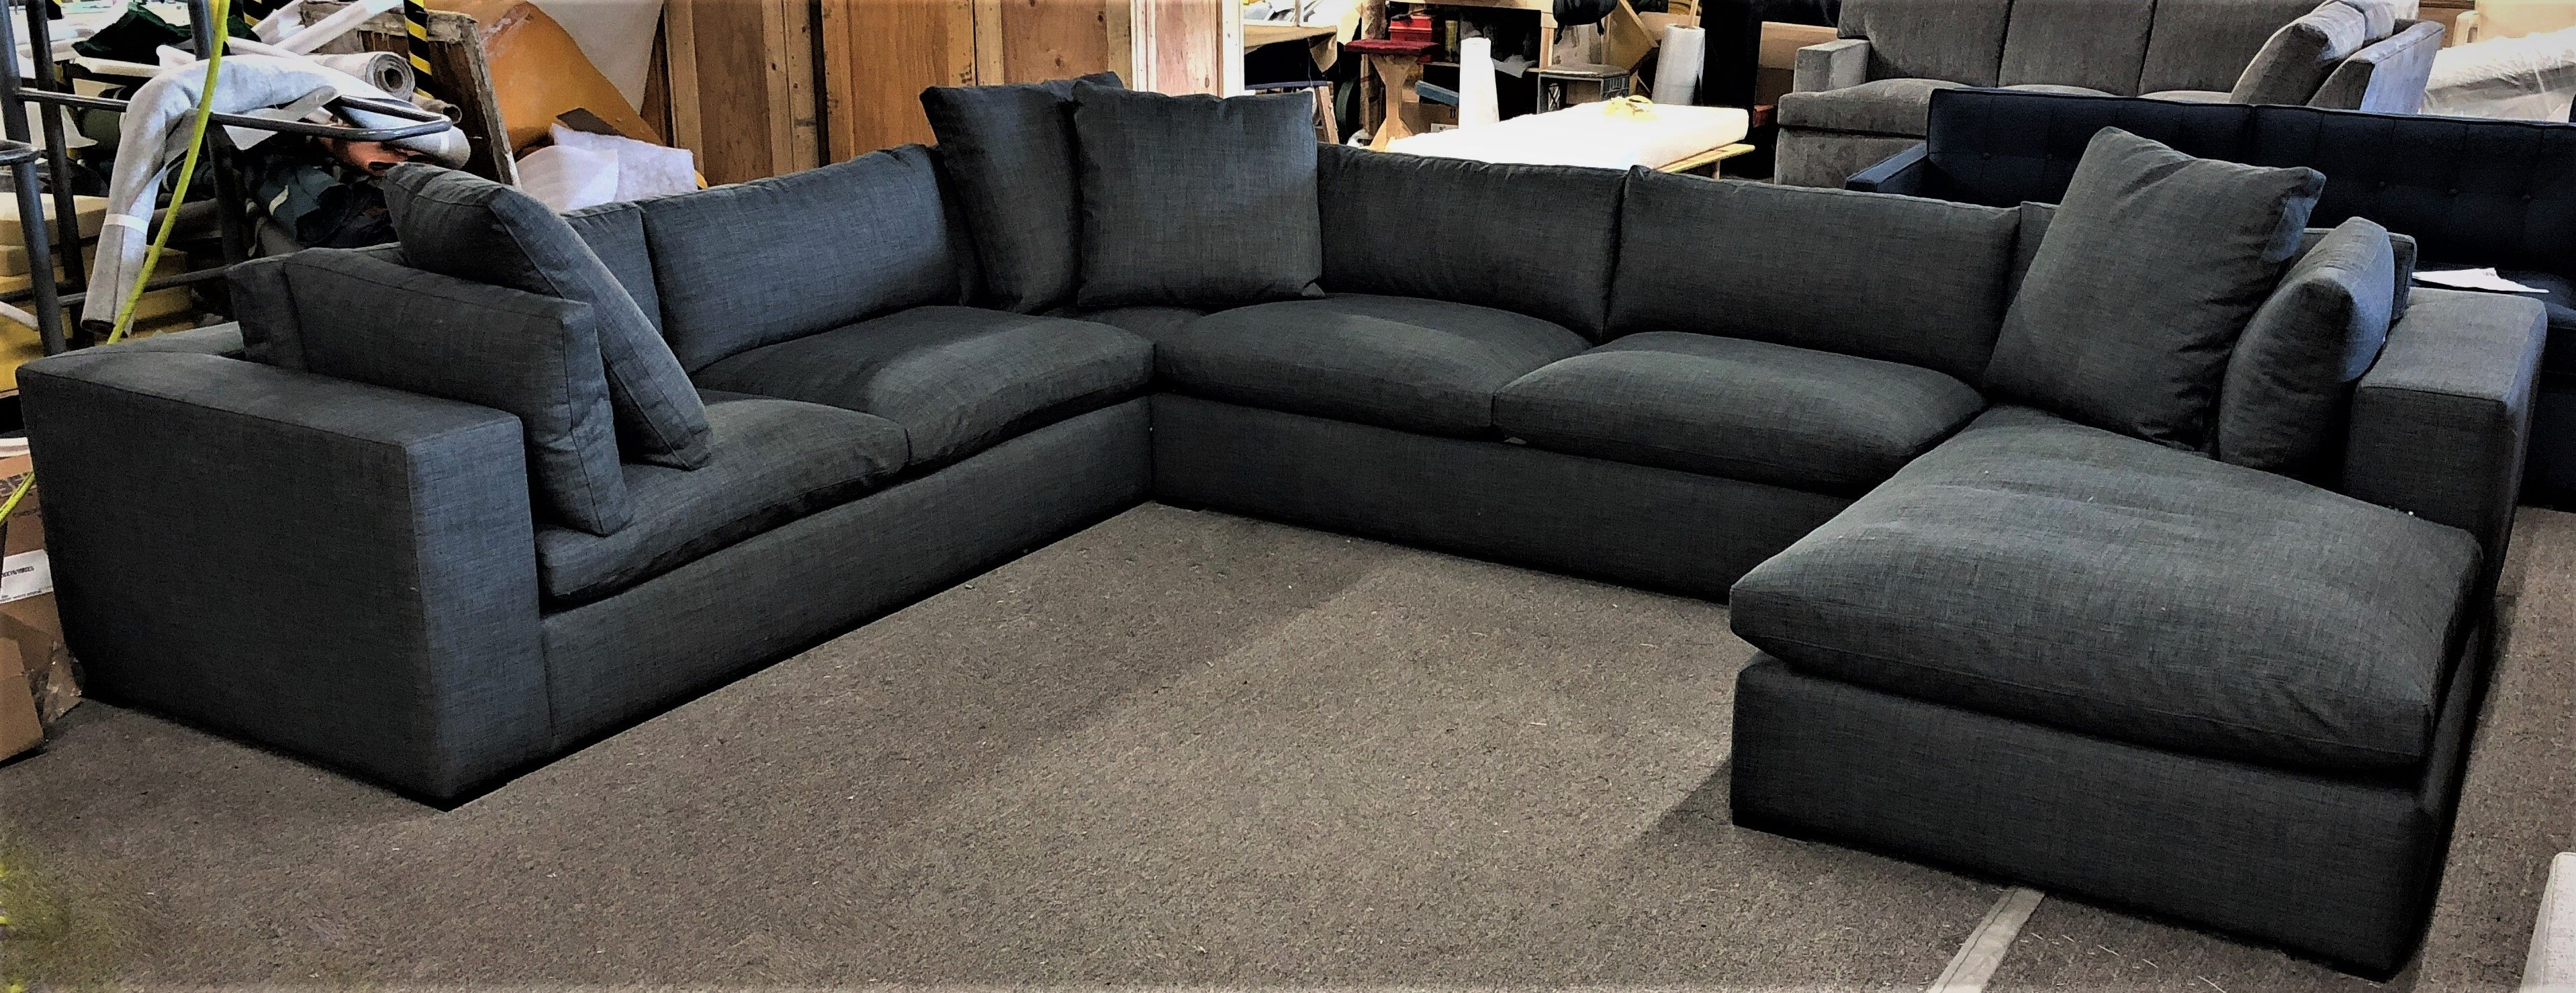 CLAUDIA STYLE ! Custom dream sofa or dream sectional. Leather or ...